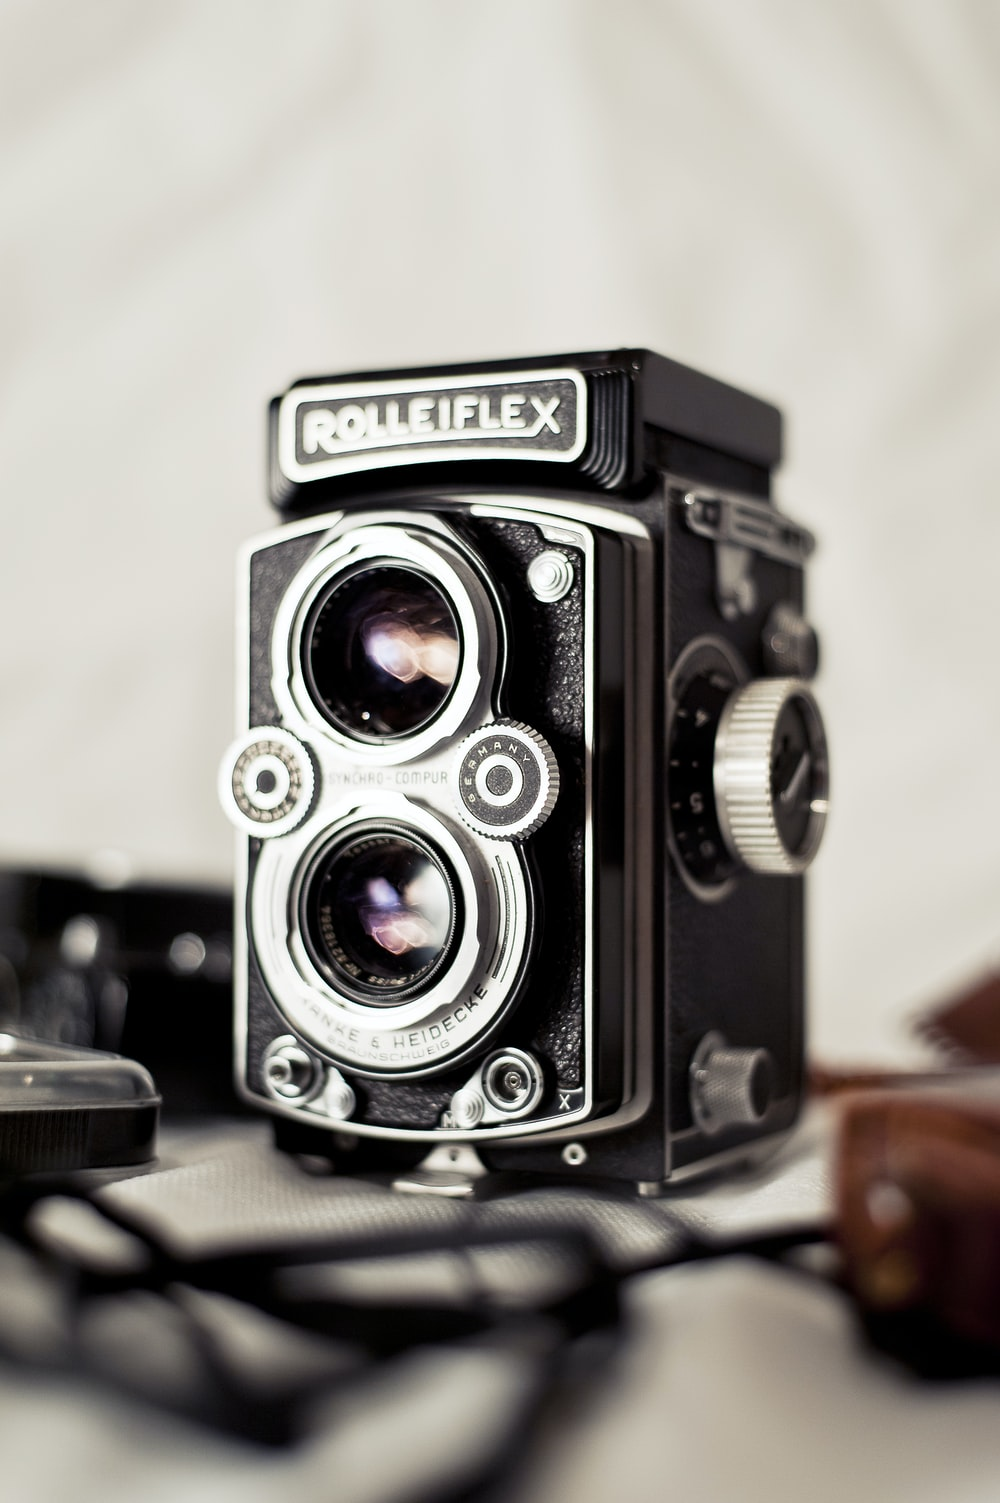 close view of black and gray Rolleiflex camera on gray surfaec